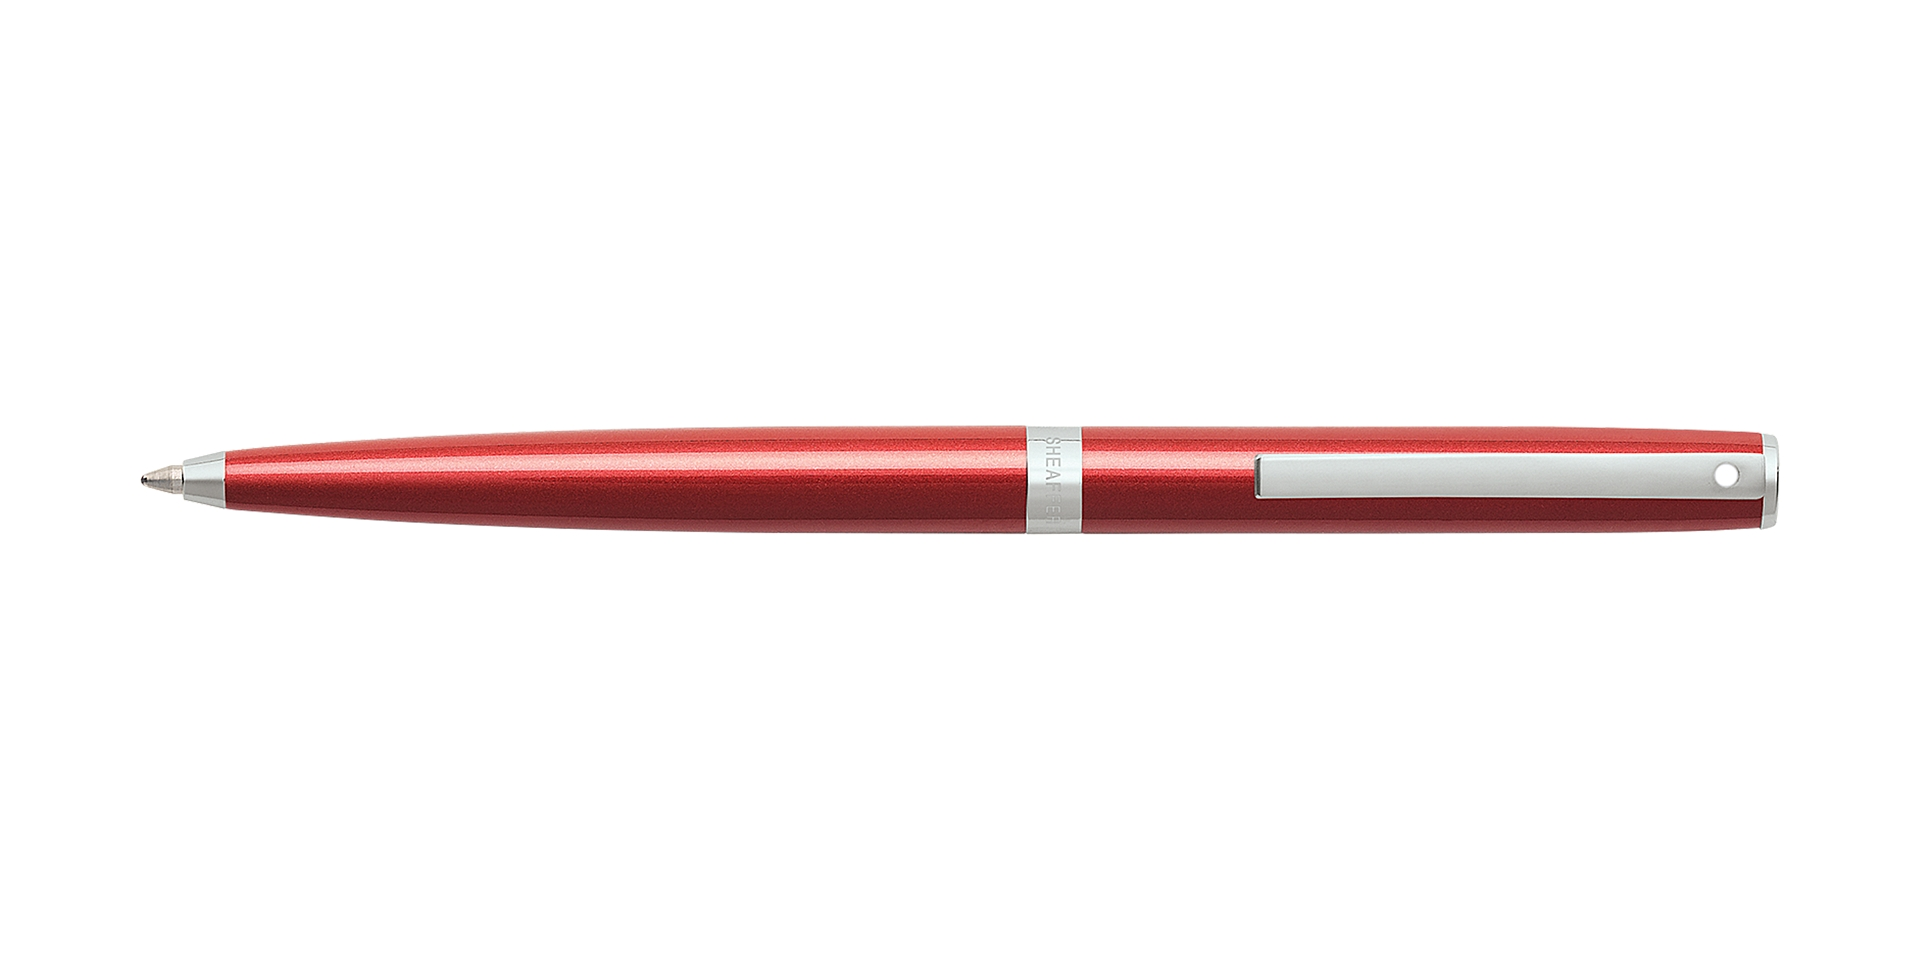 Cross Sheaffer Sagaris Metallic Red Ballpoint Pen Picture